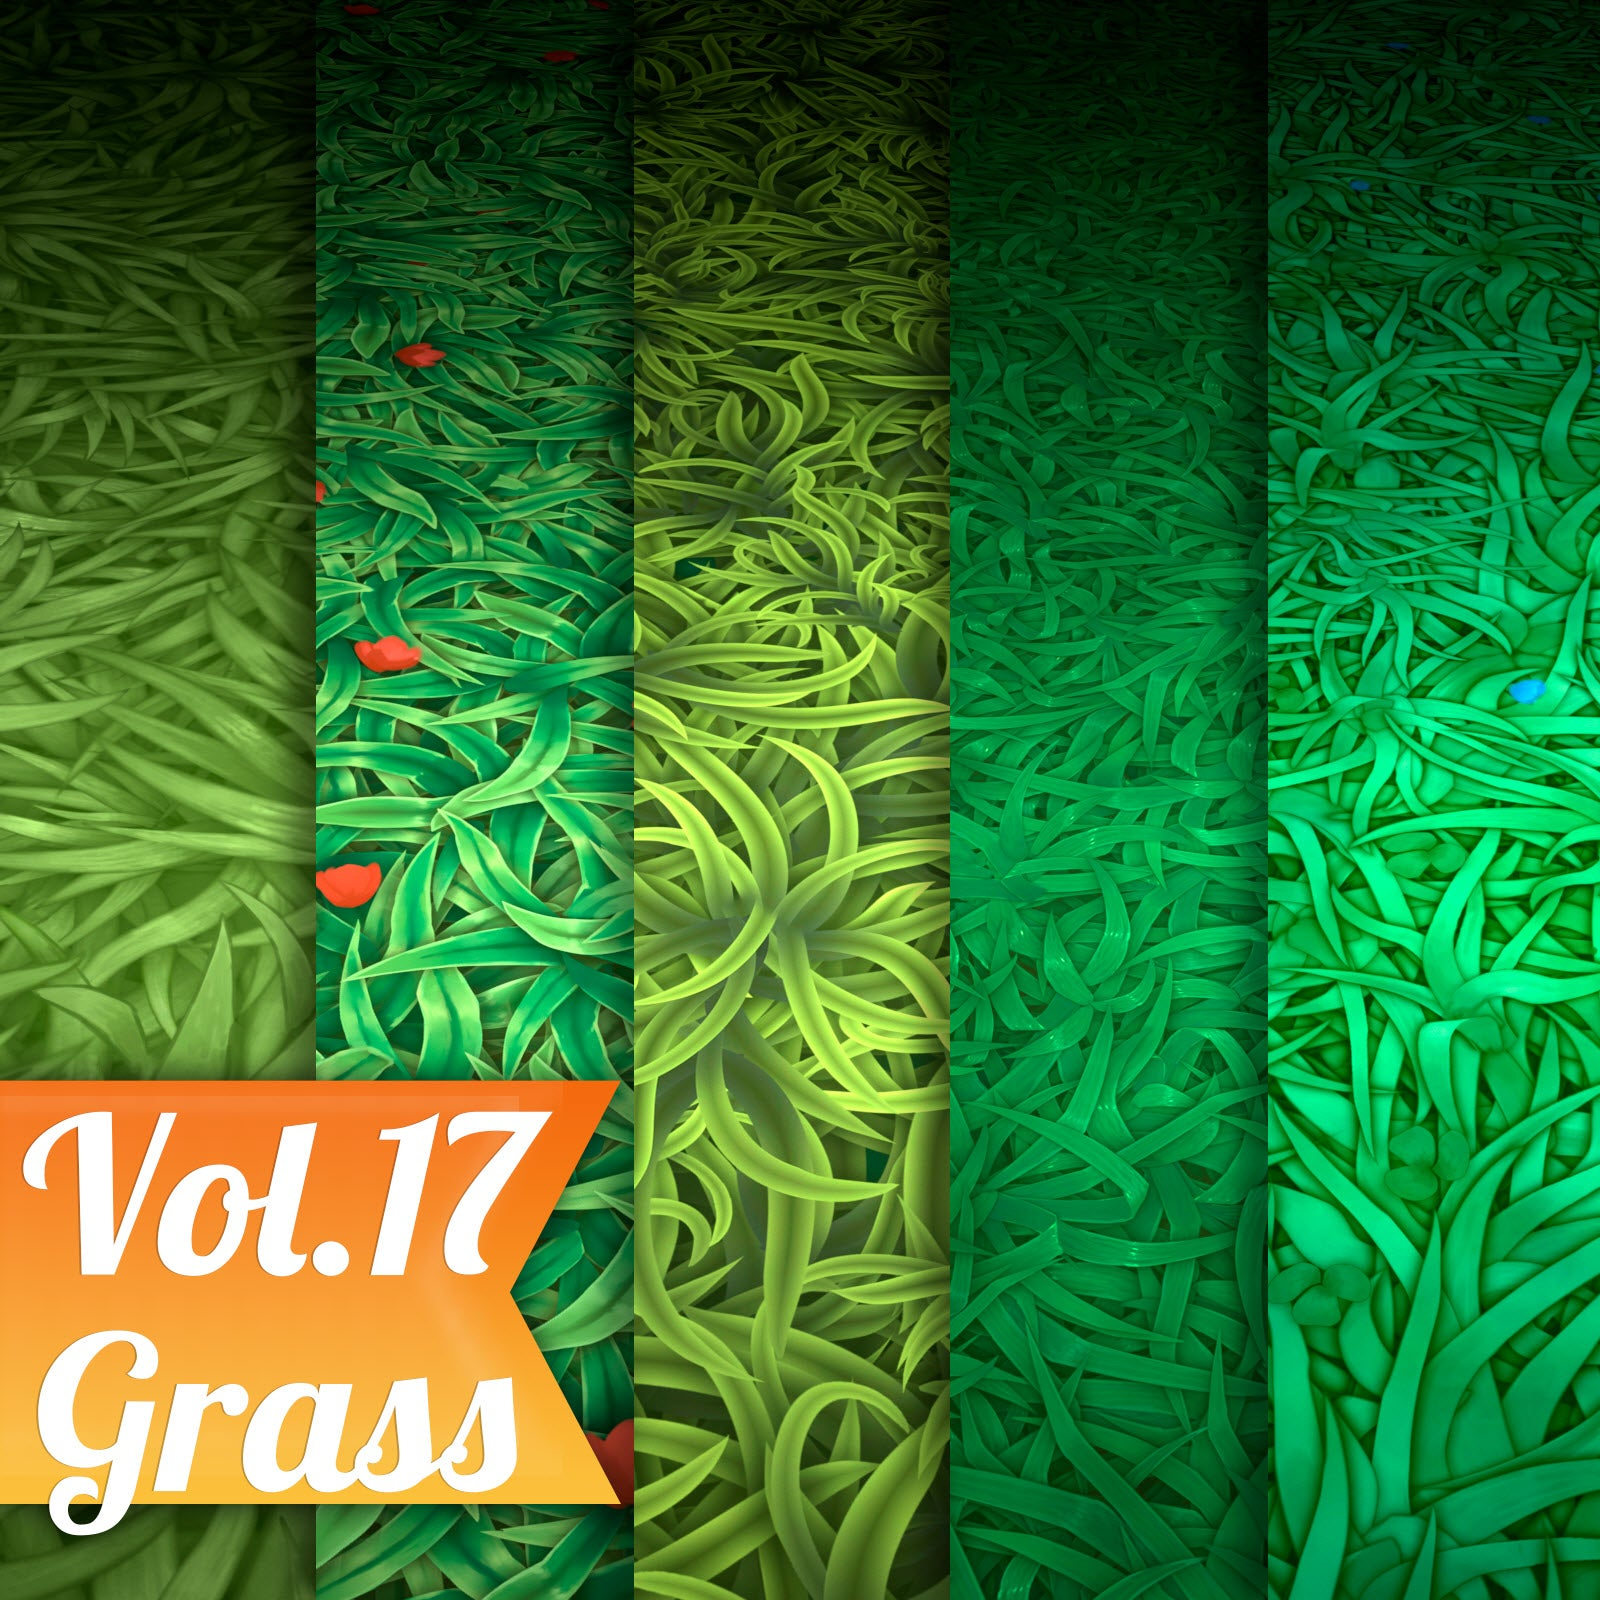 Grass Vol.17 - Hand Painted Texture Pack